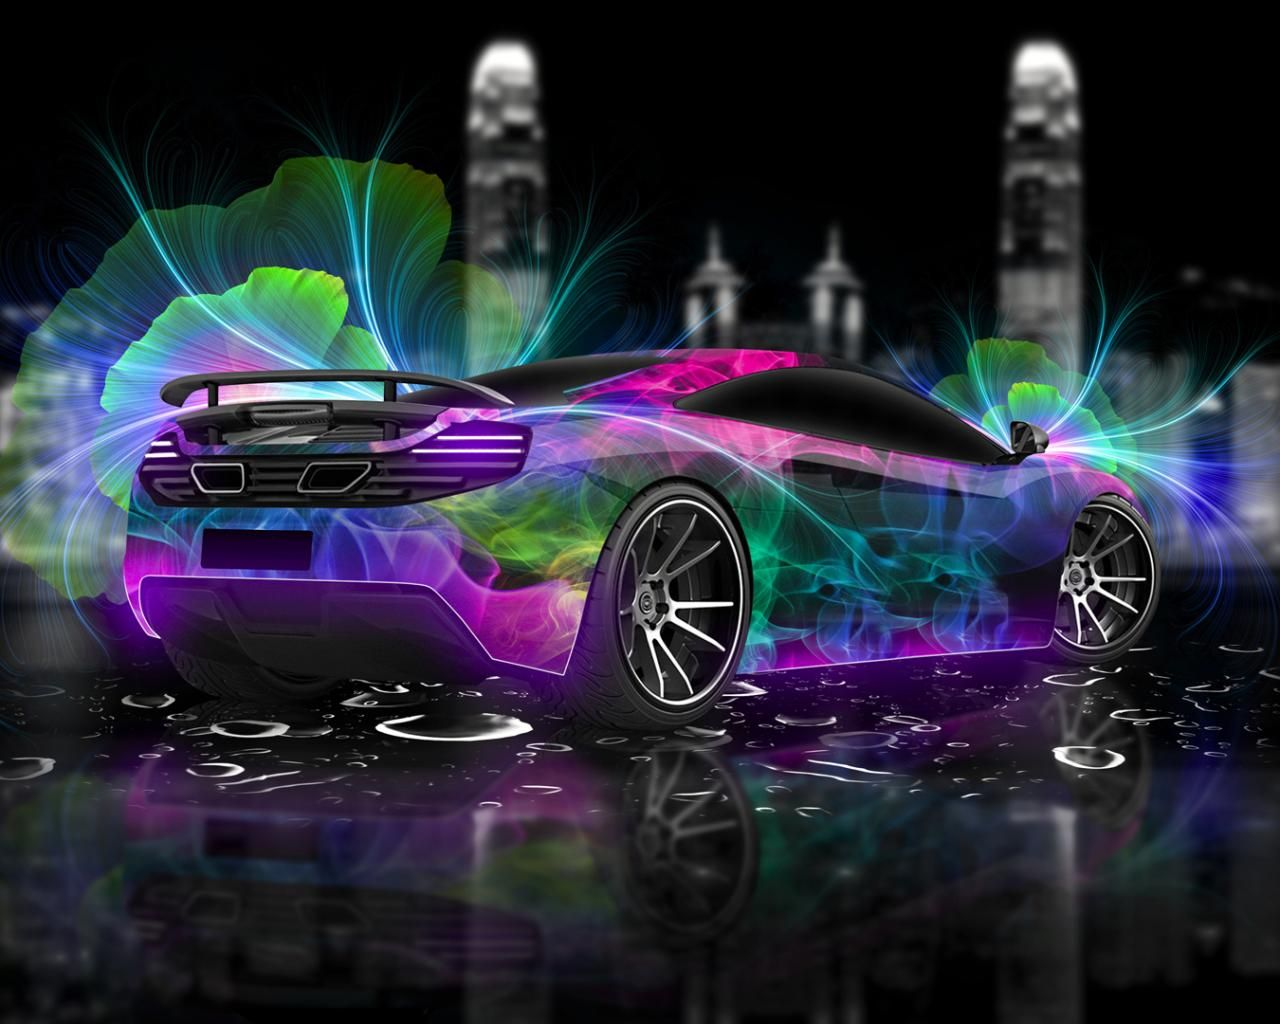 Cool Wallpapers Cool Wallpapers Cars Cool Car Backgrounds Sports Car Wallpaper